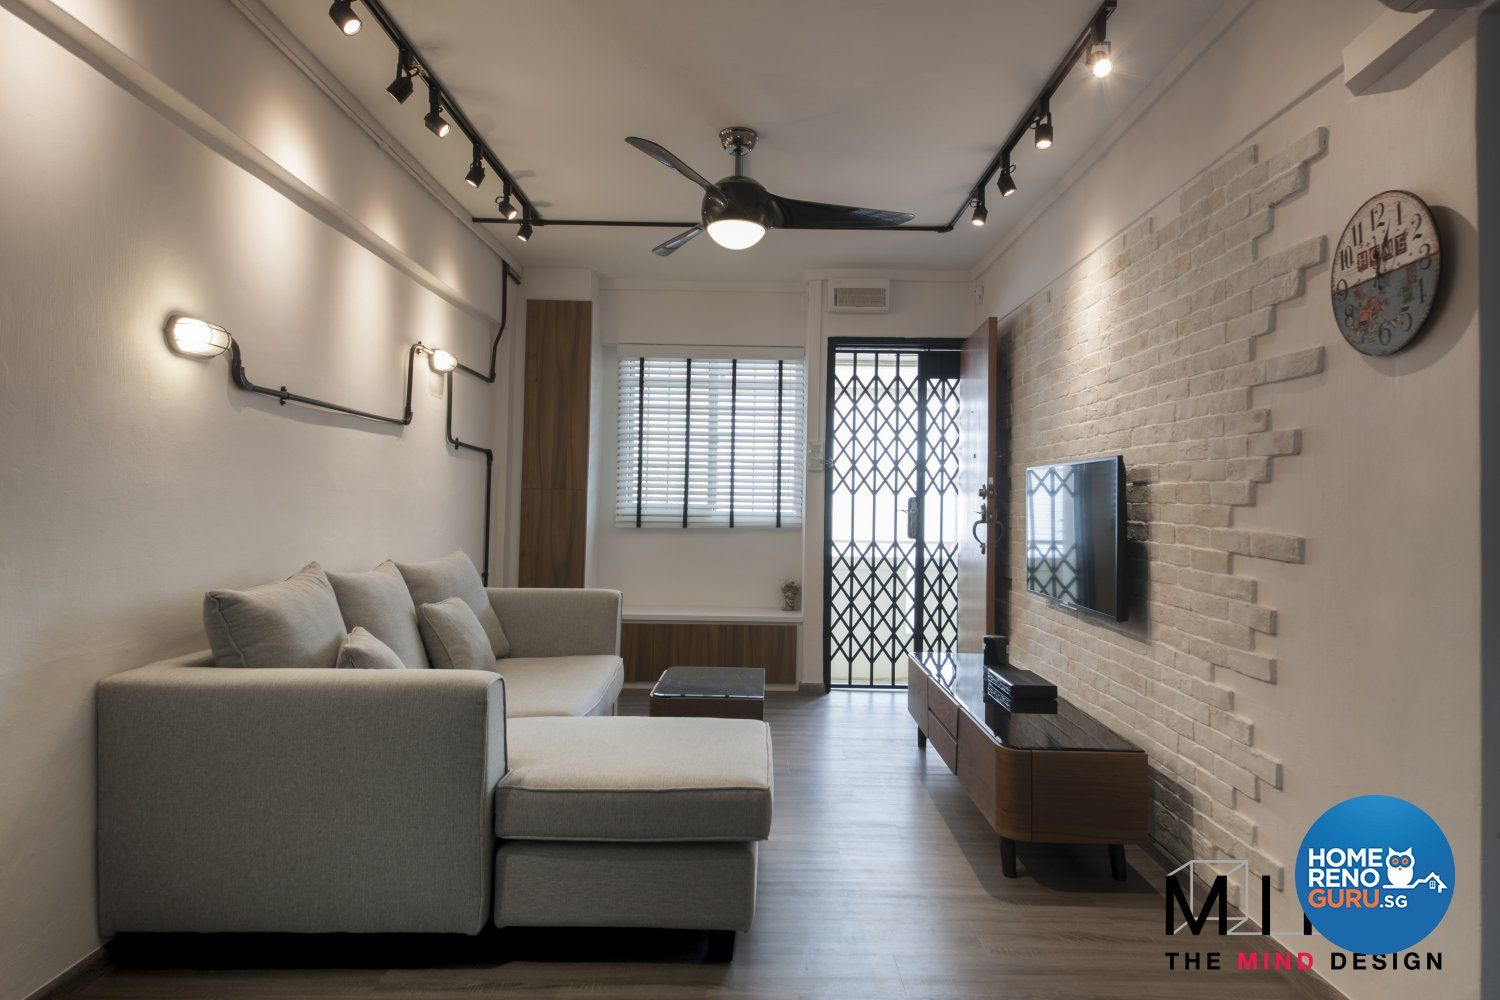 Industrial Scandinavian Design Living Room Hdb 3 Room Design By The Mind Design Small Apartment Design Home Room Design Scandinavian Design Living Room